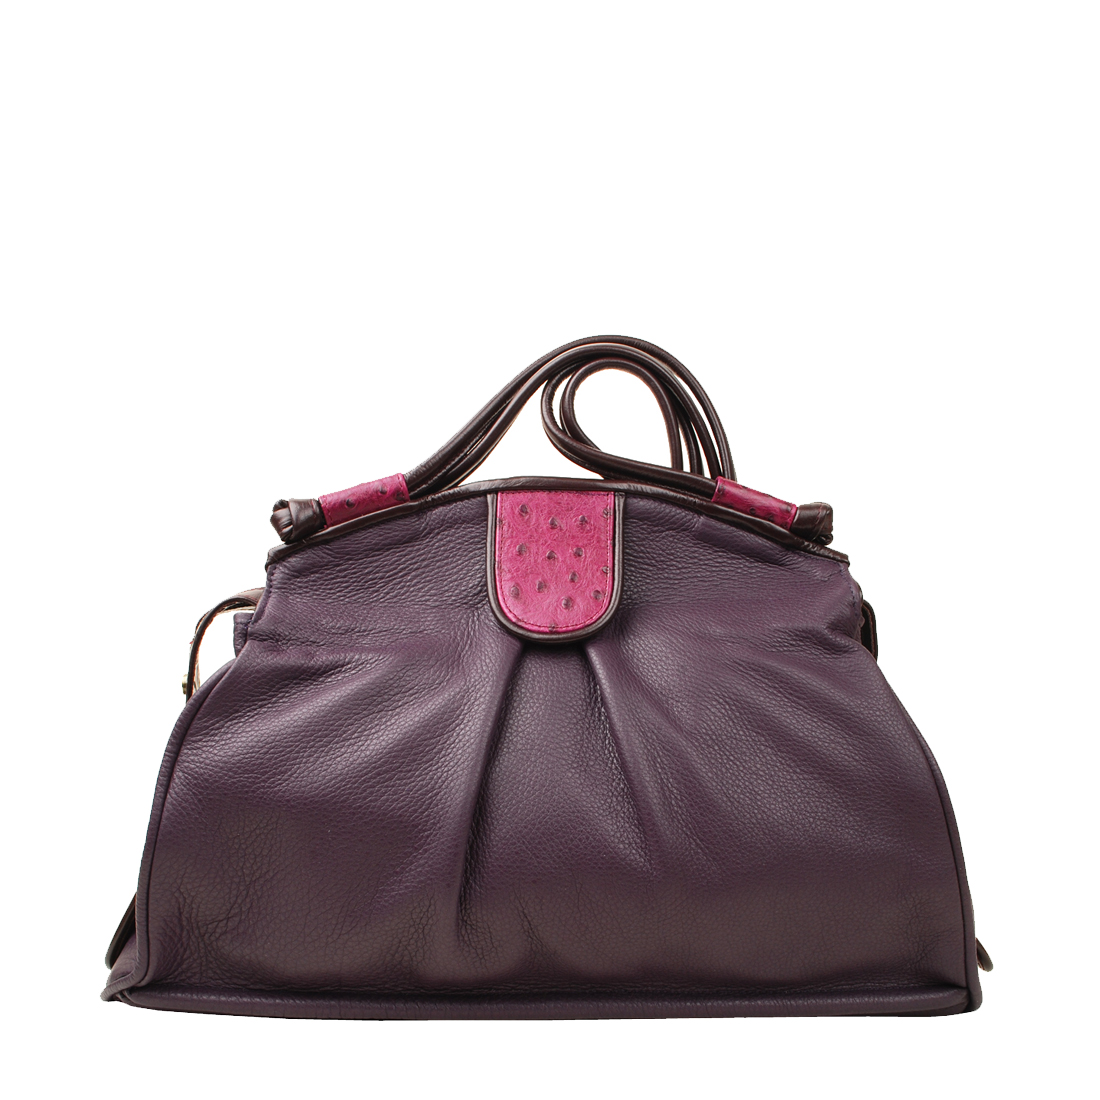 Jessica Magenata Leather Shoulder Bag